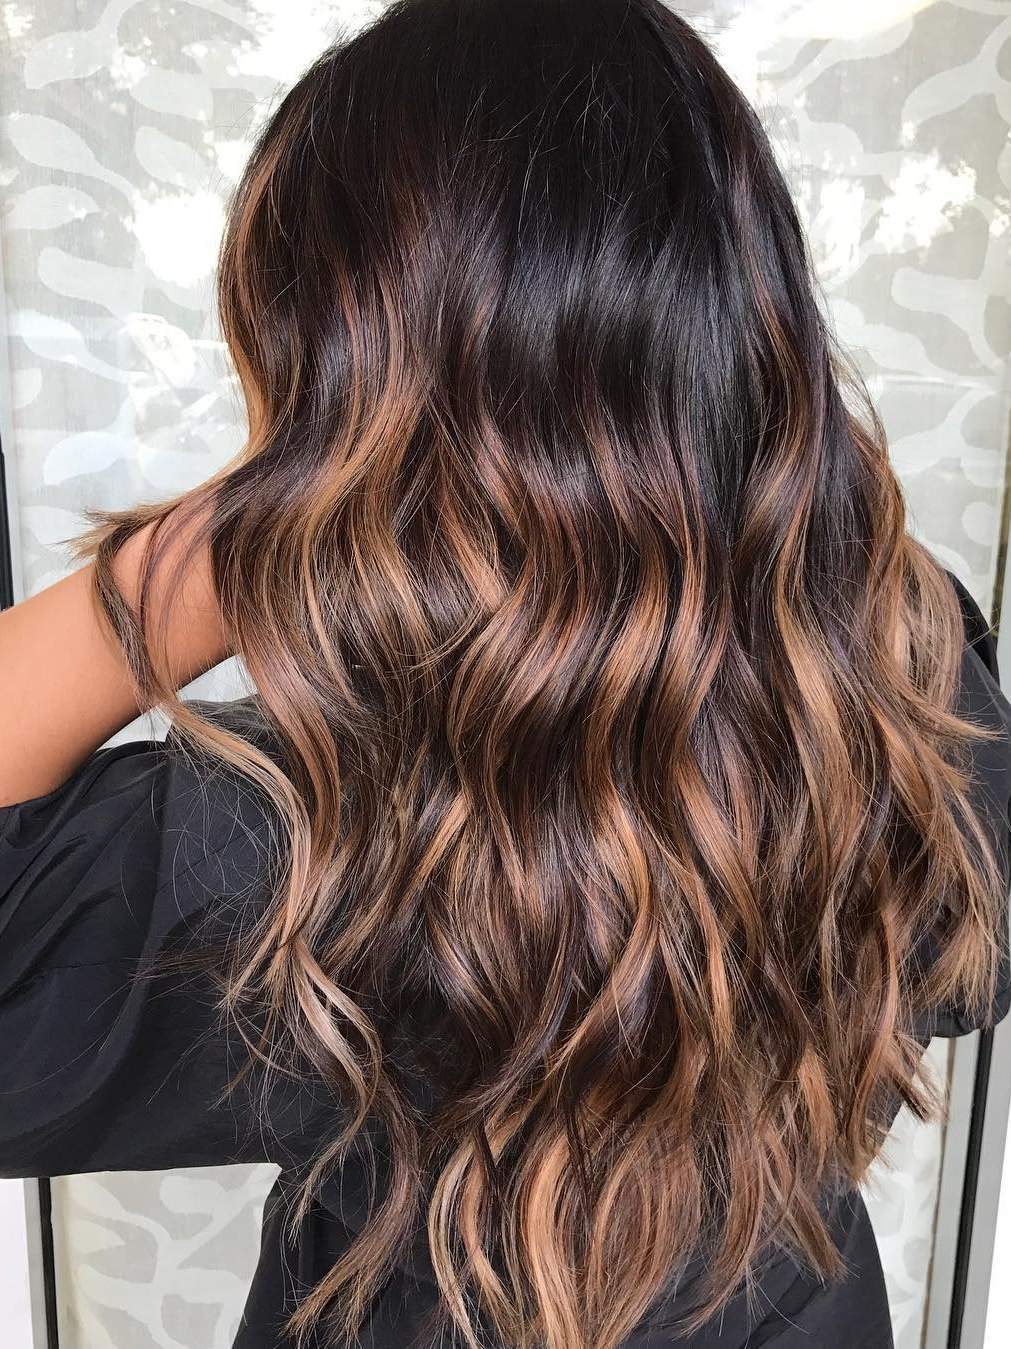 These 3 Hair Color Trends Are About to Be Huge for Brunettes 8a372547b9a702e873ff22ff0eb0a6b9